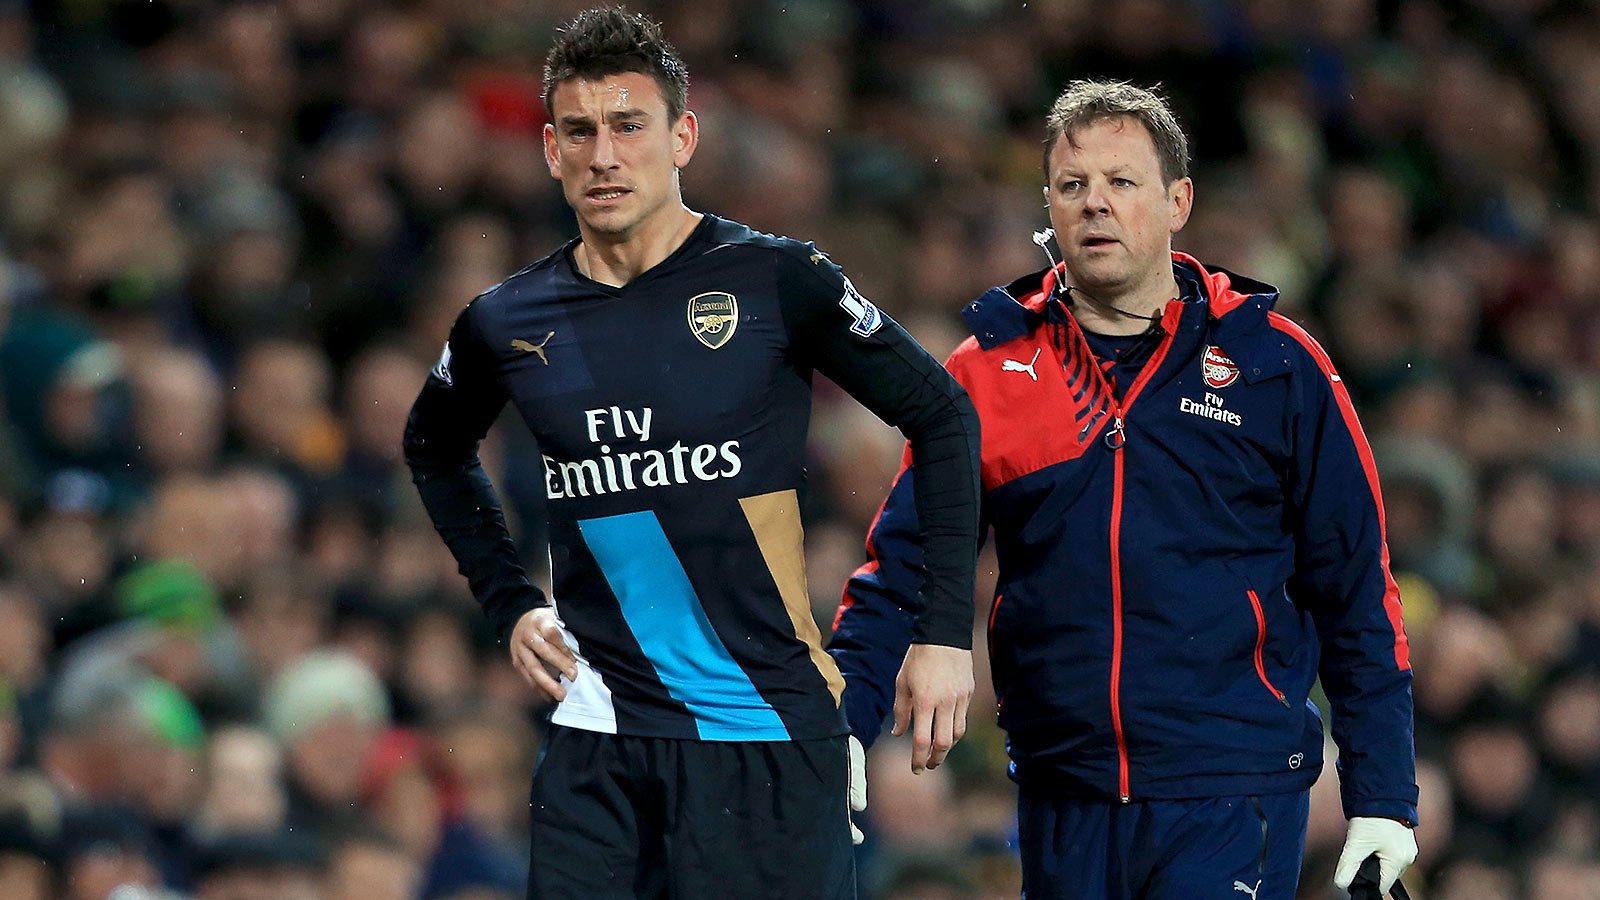 Arsenal hope Laurent Koscielny could return against Sunderland